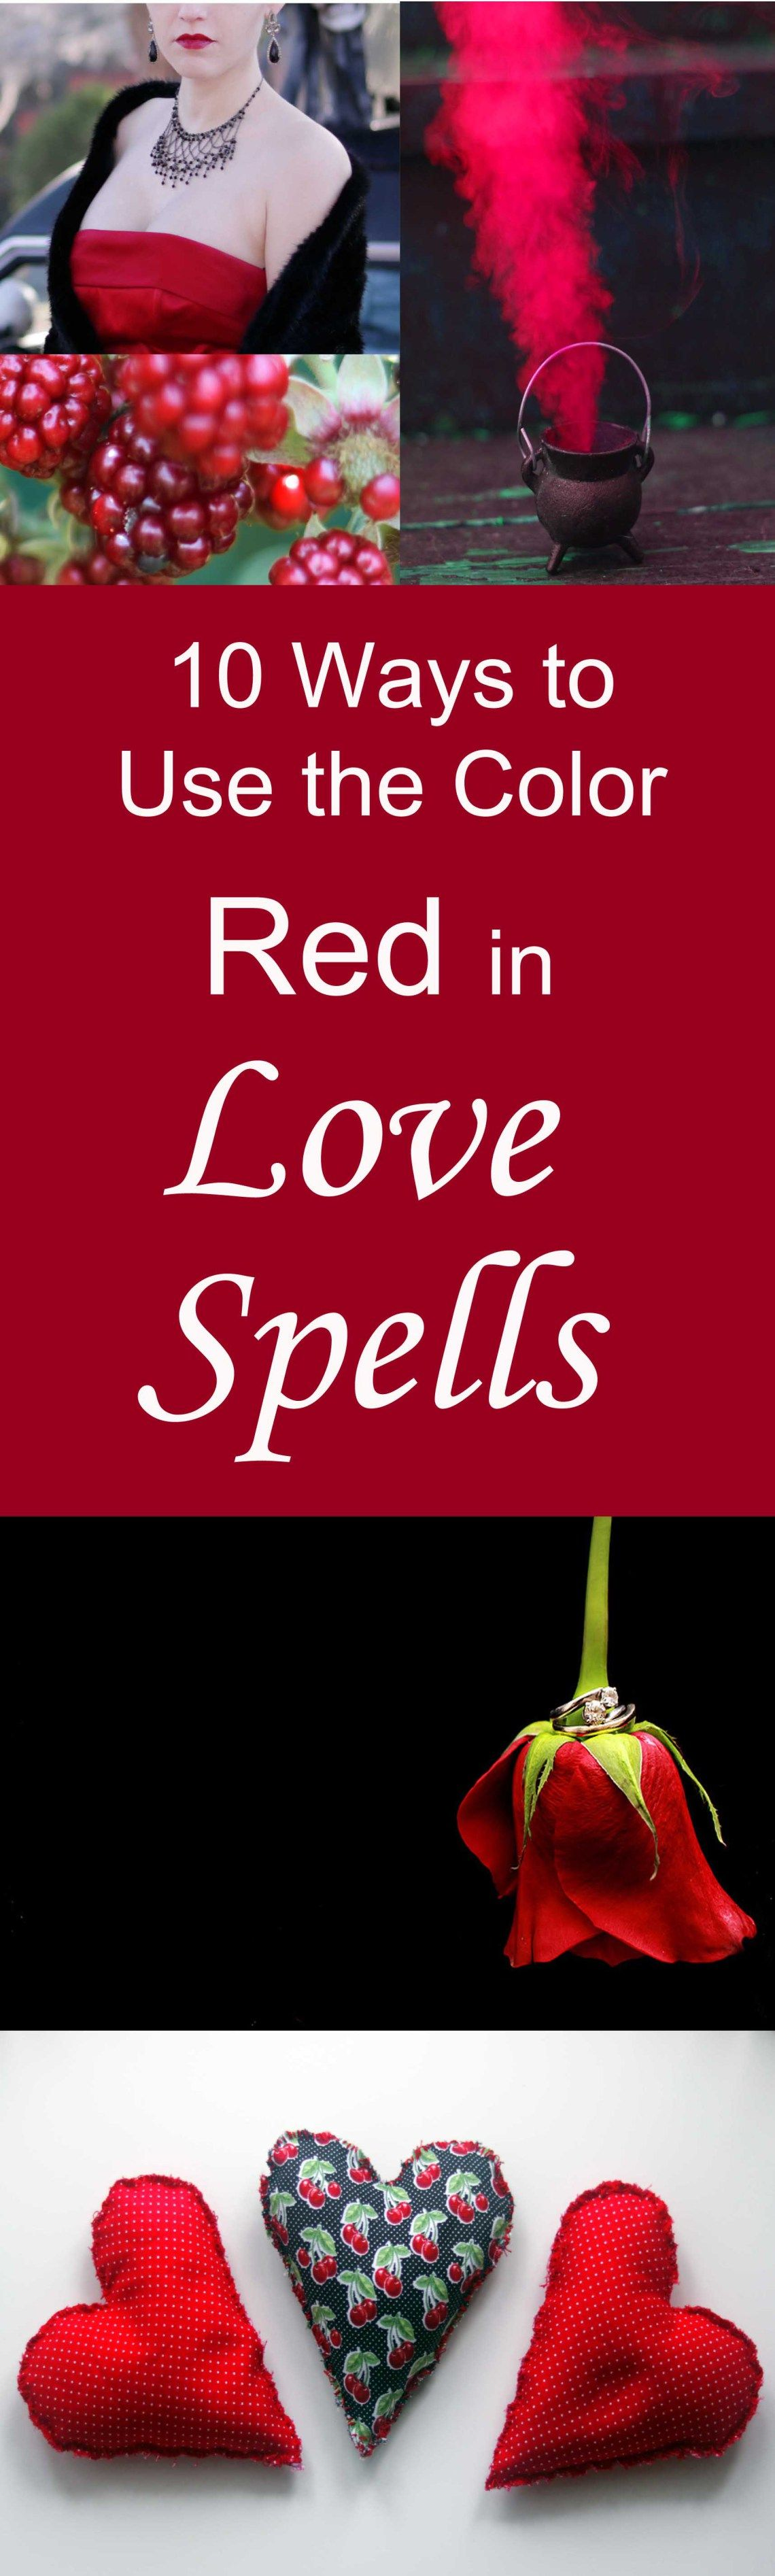 10 Ways to Use the Color Red in Love Spells & Attraction